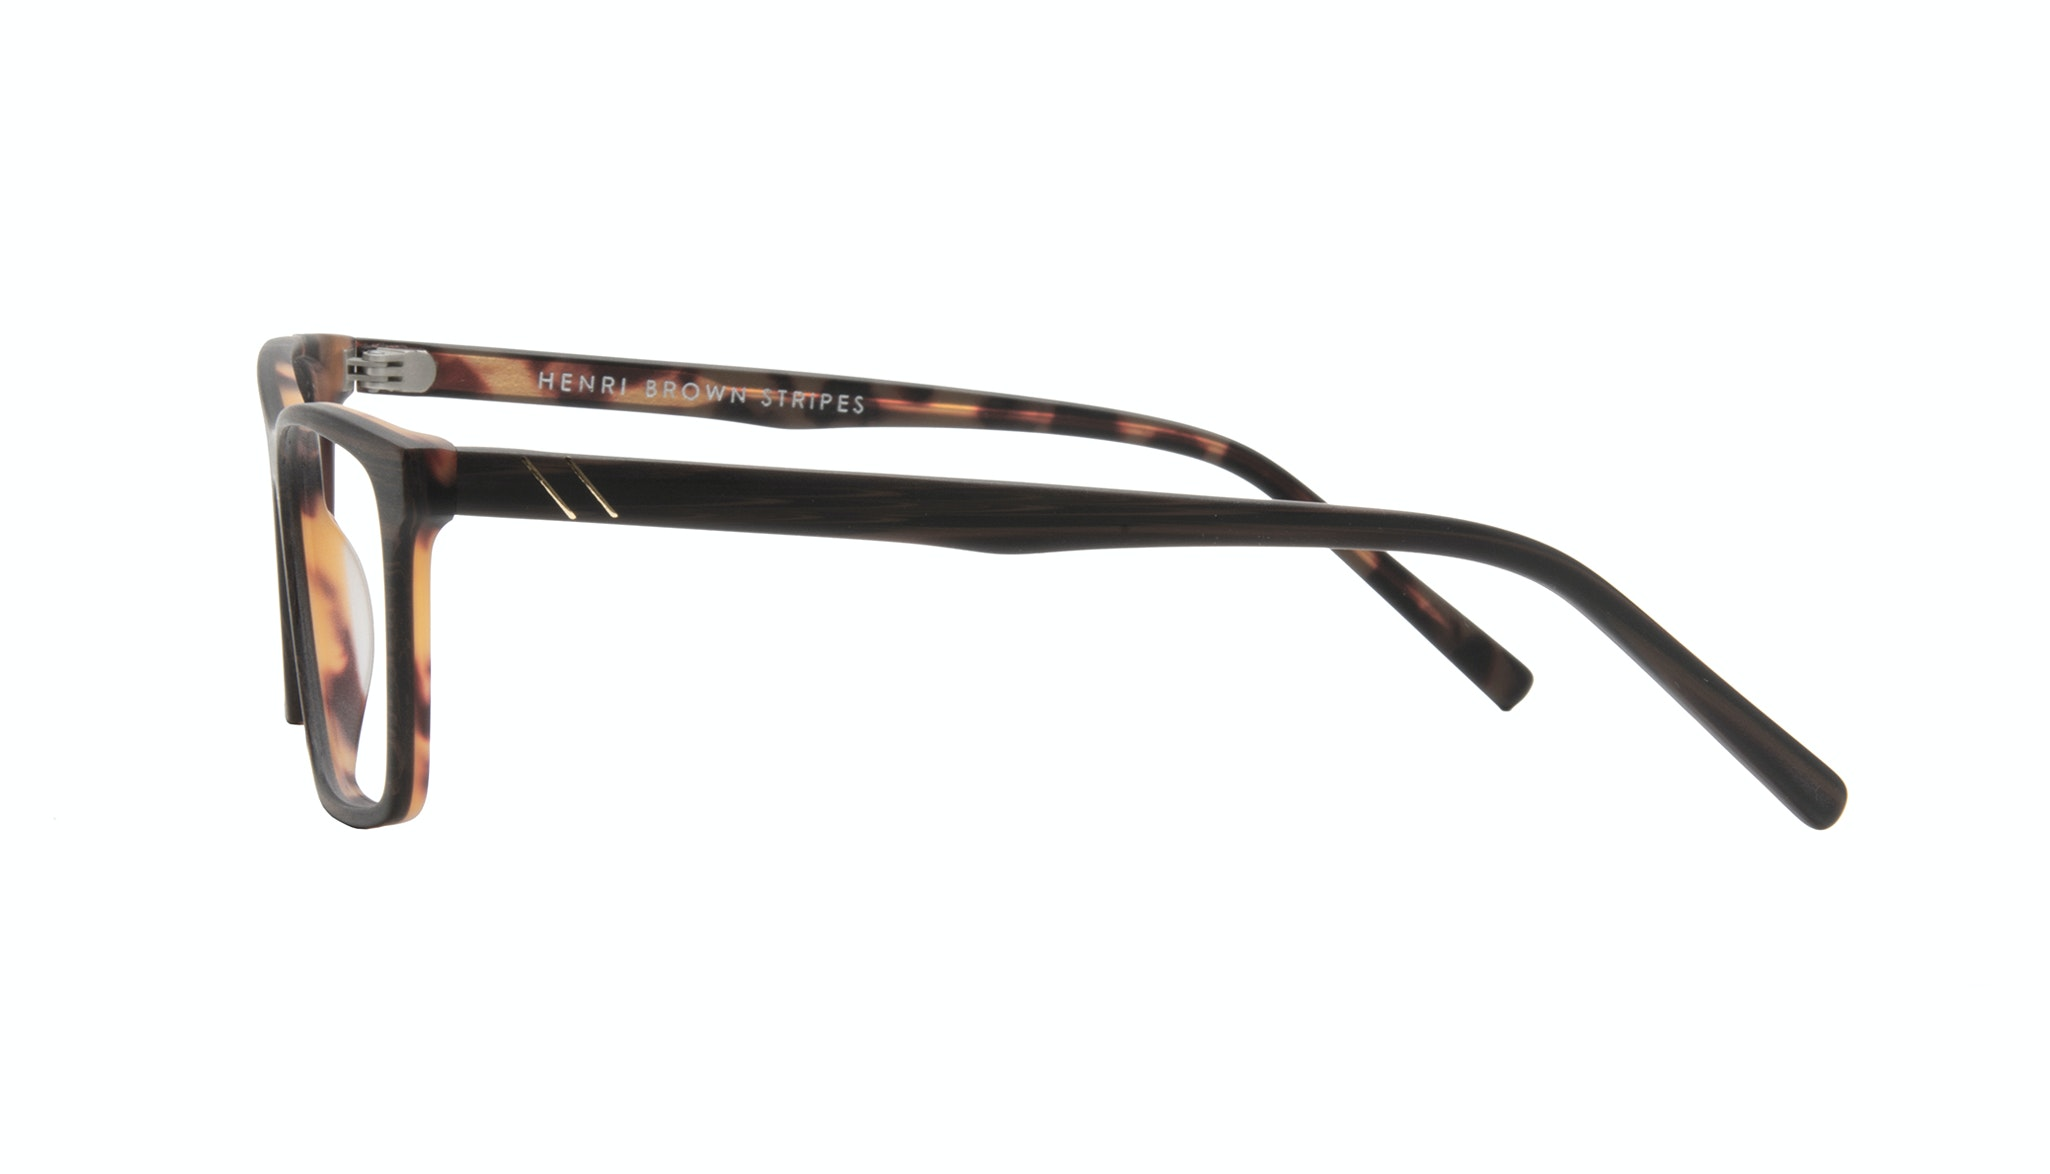 Affordable Fashion Glasses Rectangle Eyeglasses Men Henri Brown Stripes Side